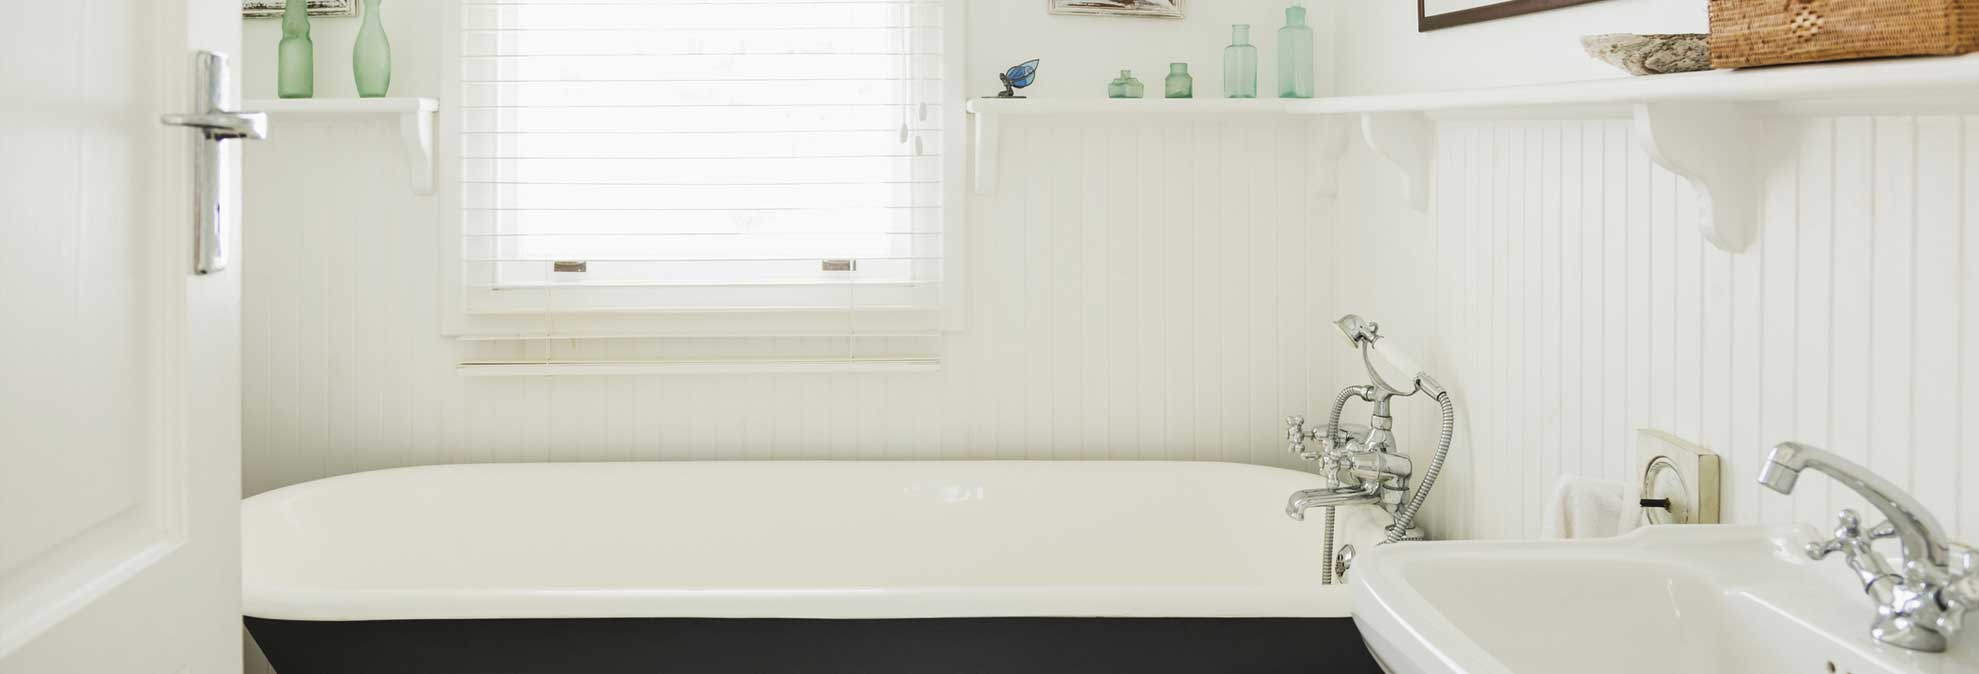 Best Mildew-Resistant Paint for Your Bathroom - Consumer Reports